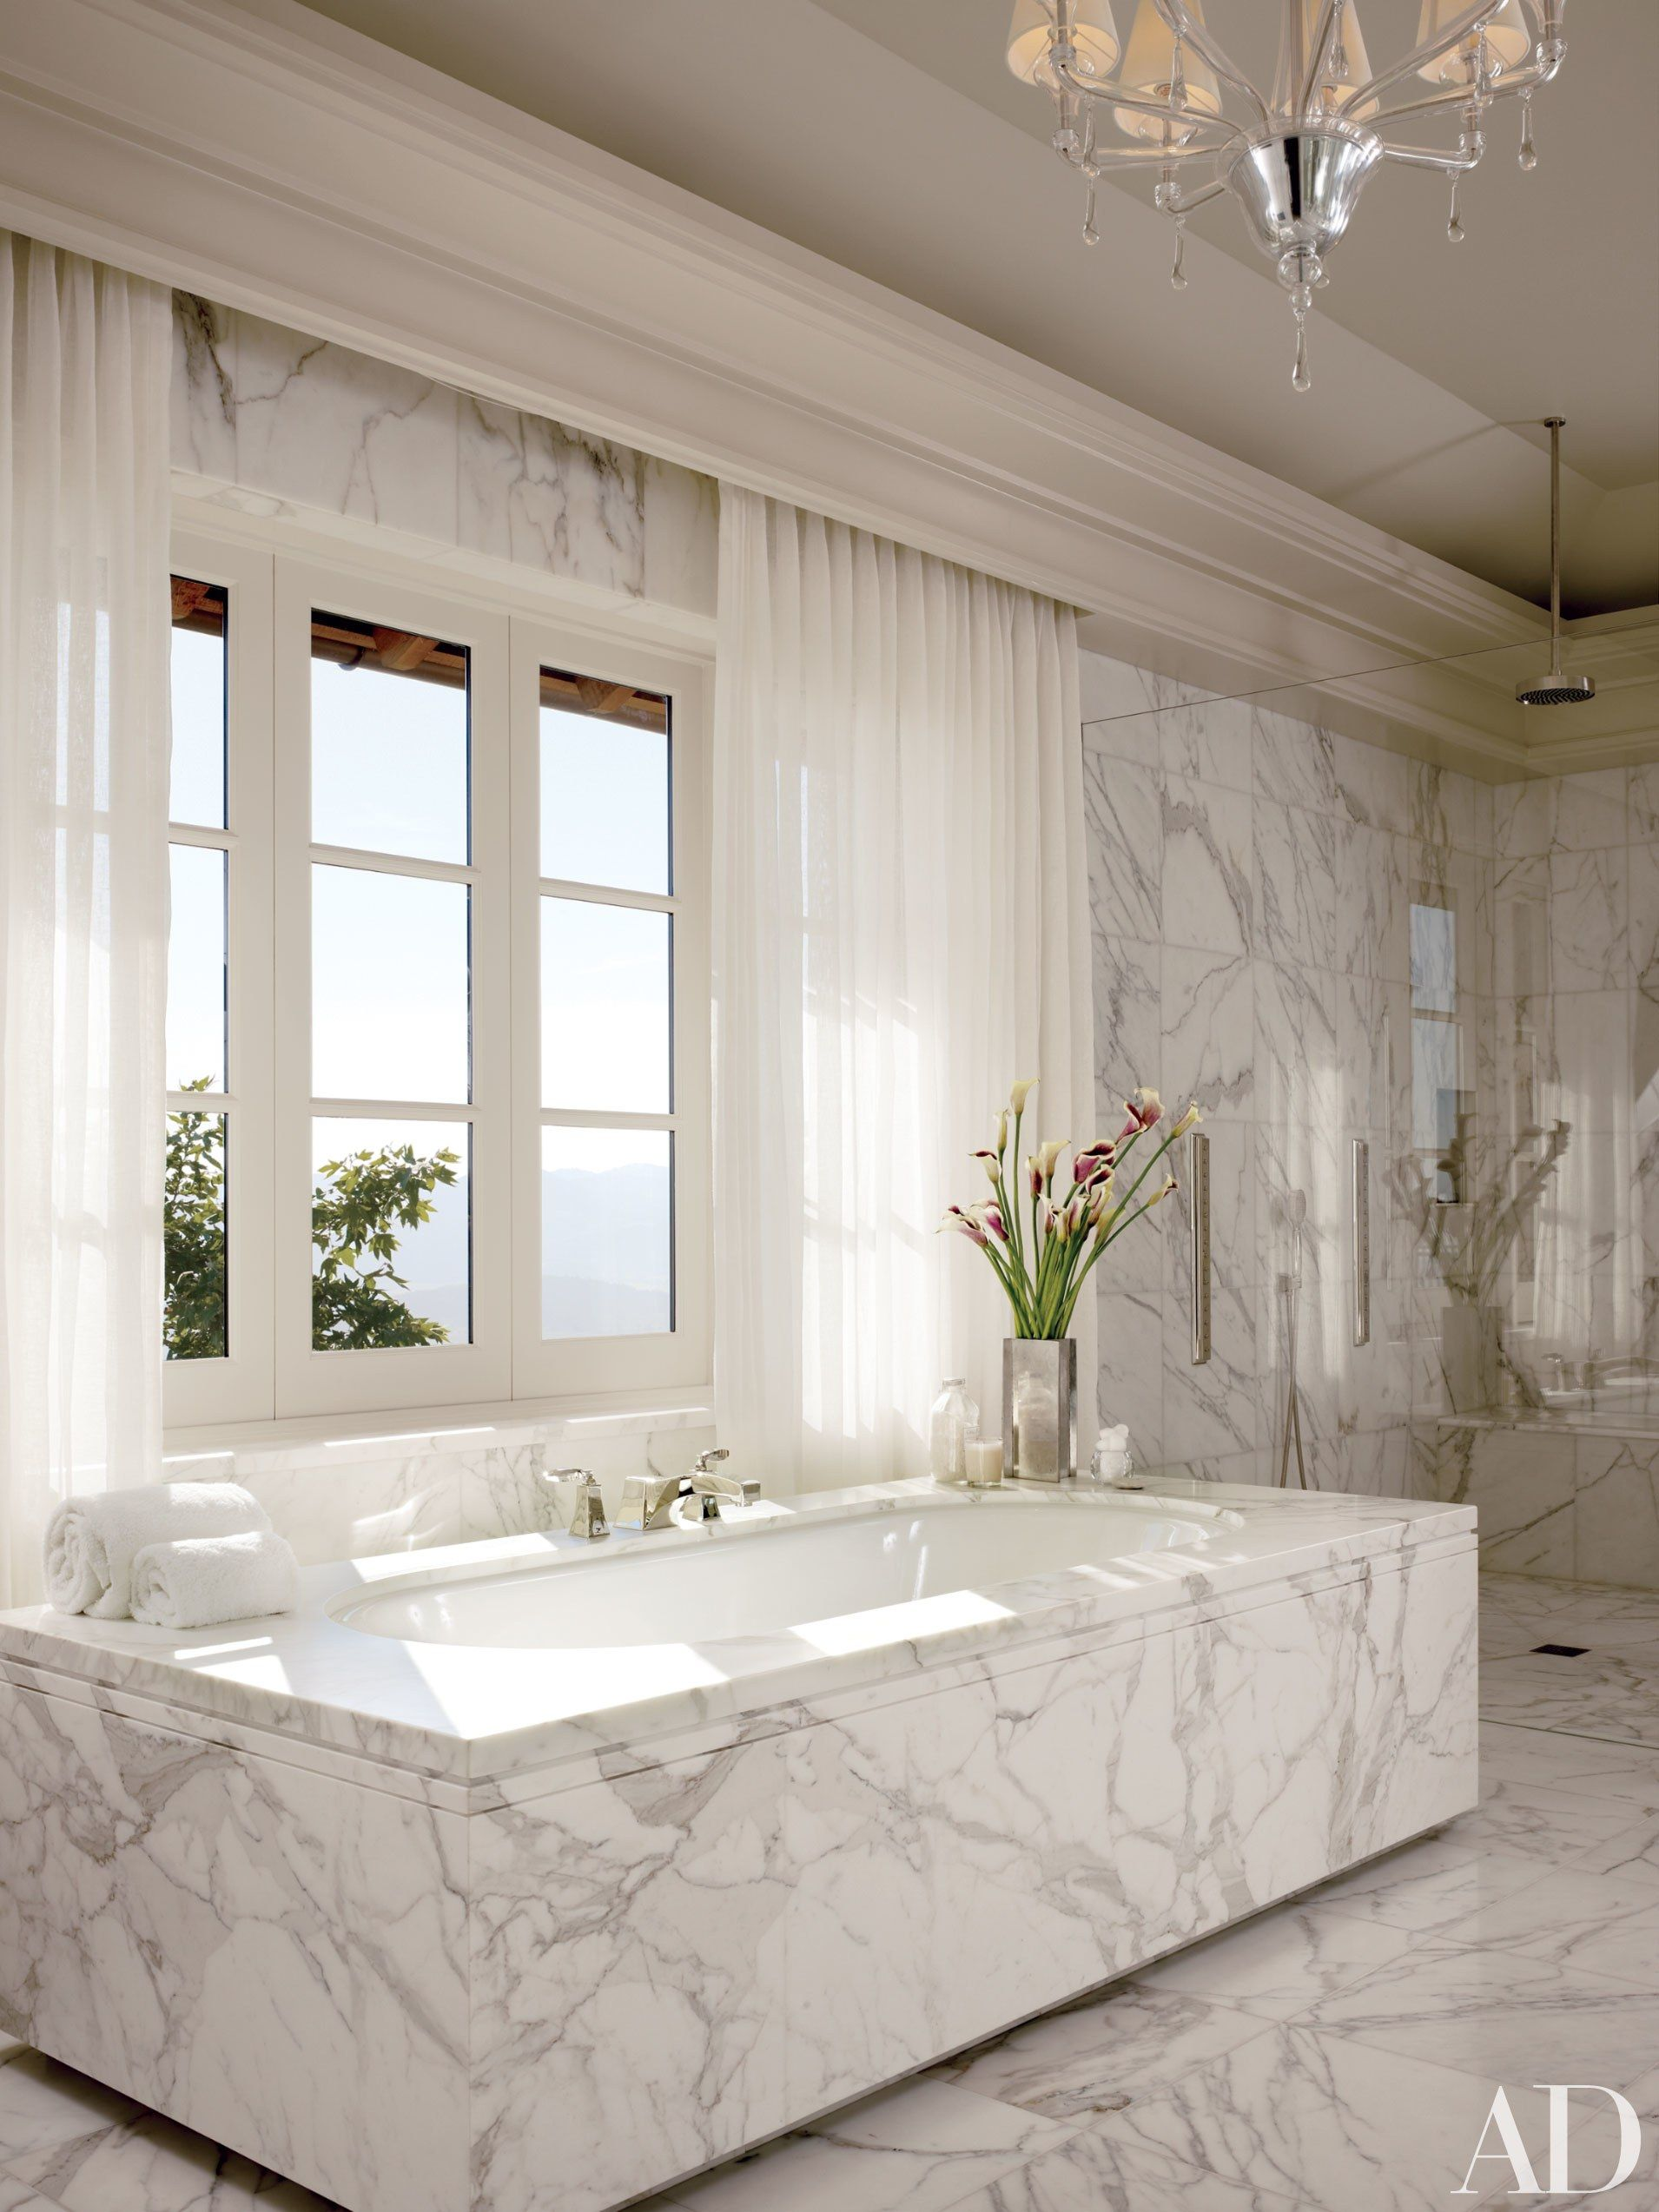 24 White Baths That Will Transform Your Home into a Spa | Pinterest ...